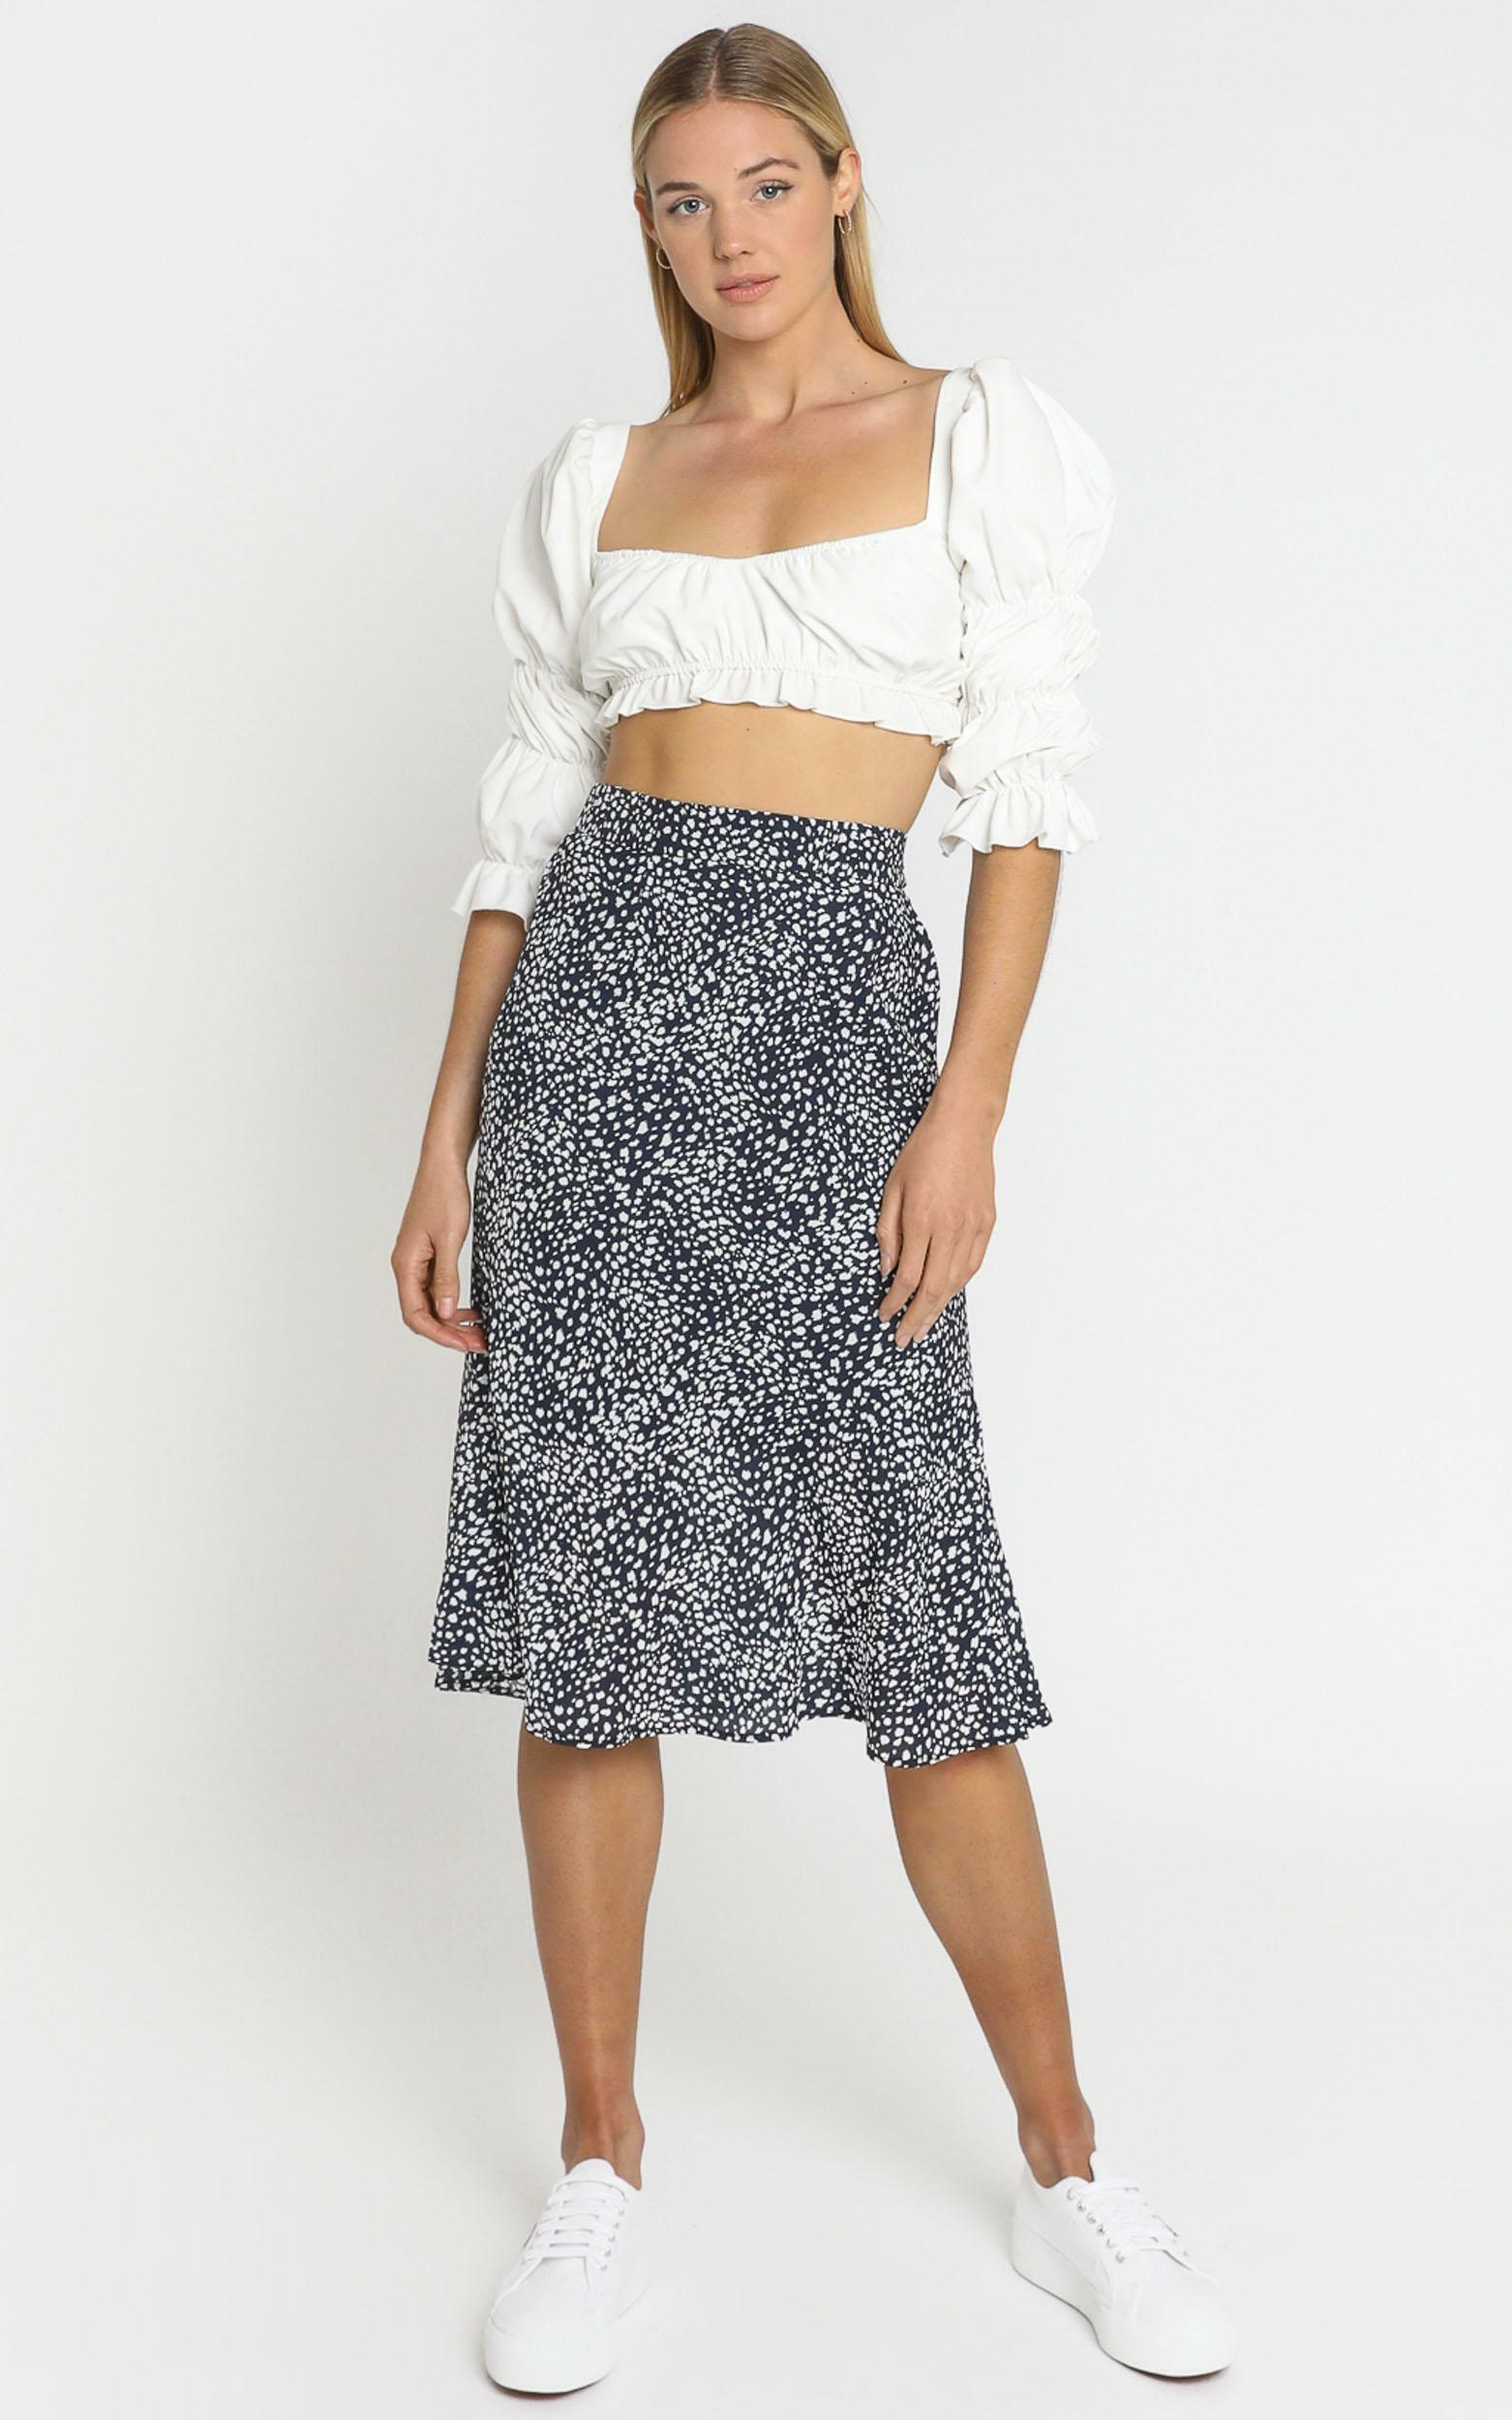 Alegra Skirt in Navy - 6 (XS), NVY1, hi-res image number null